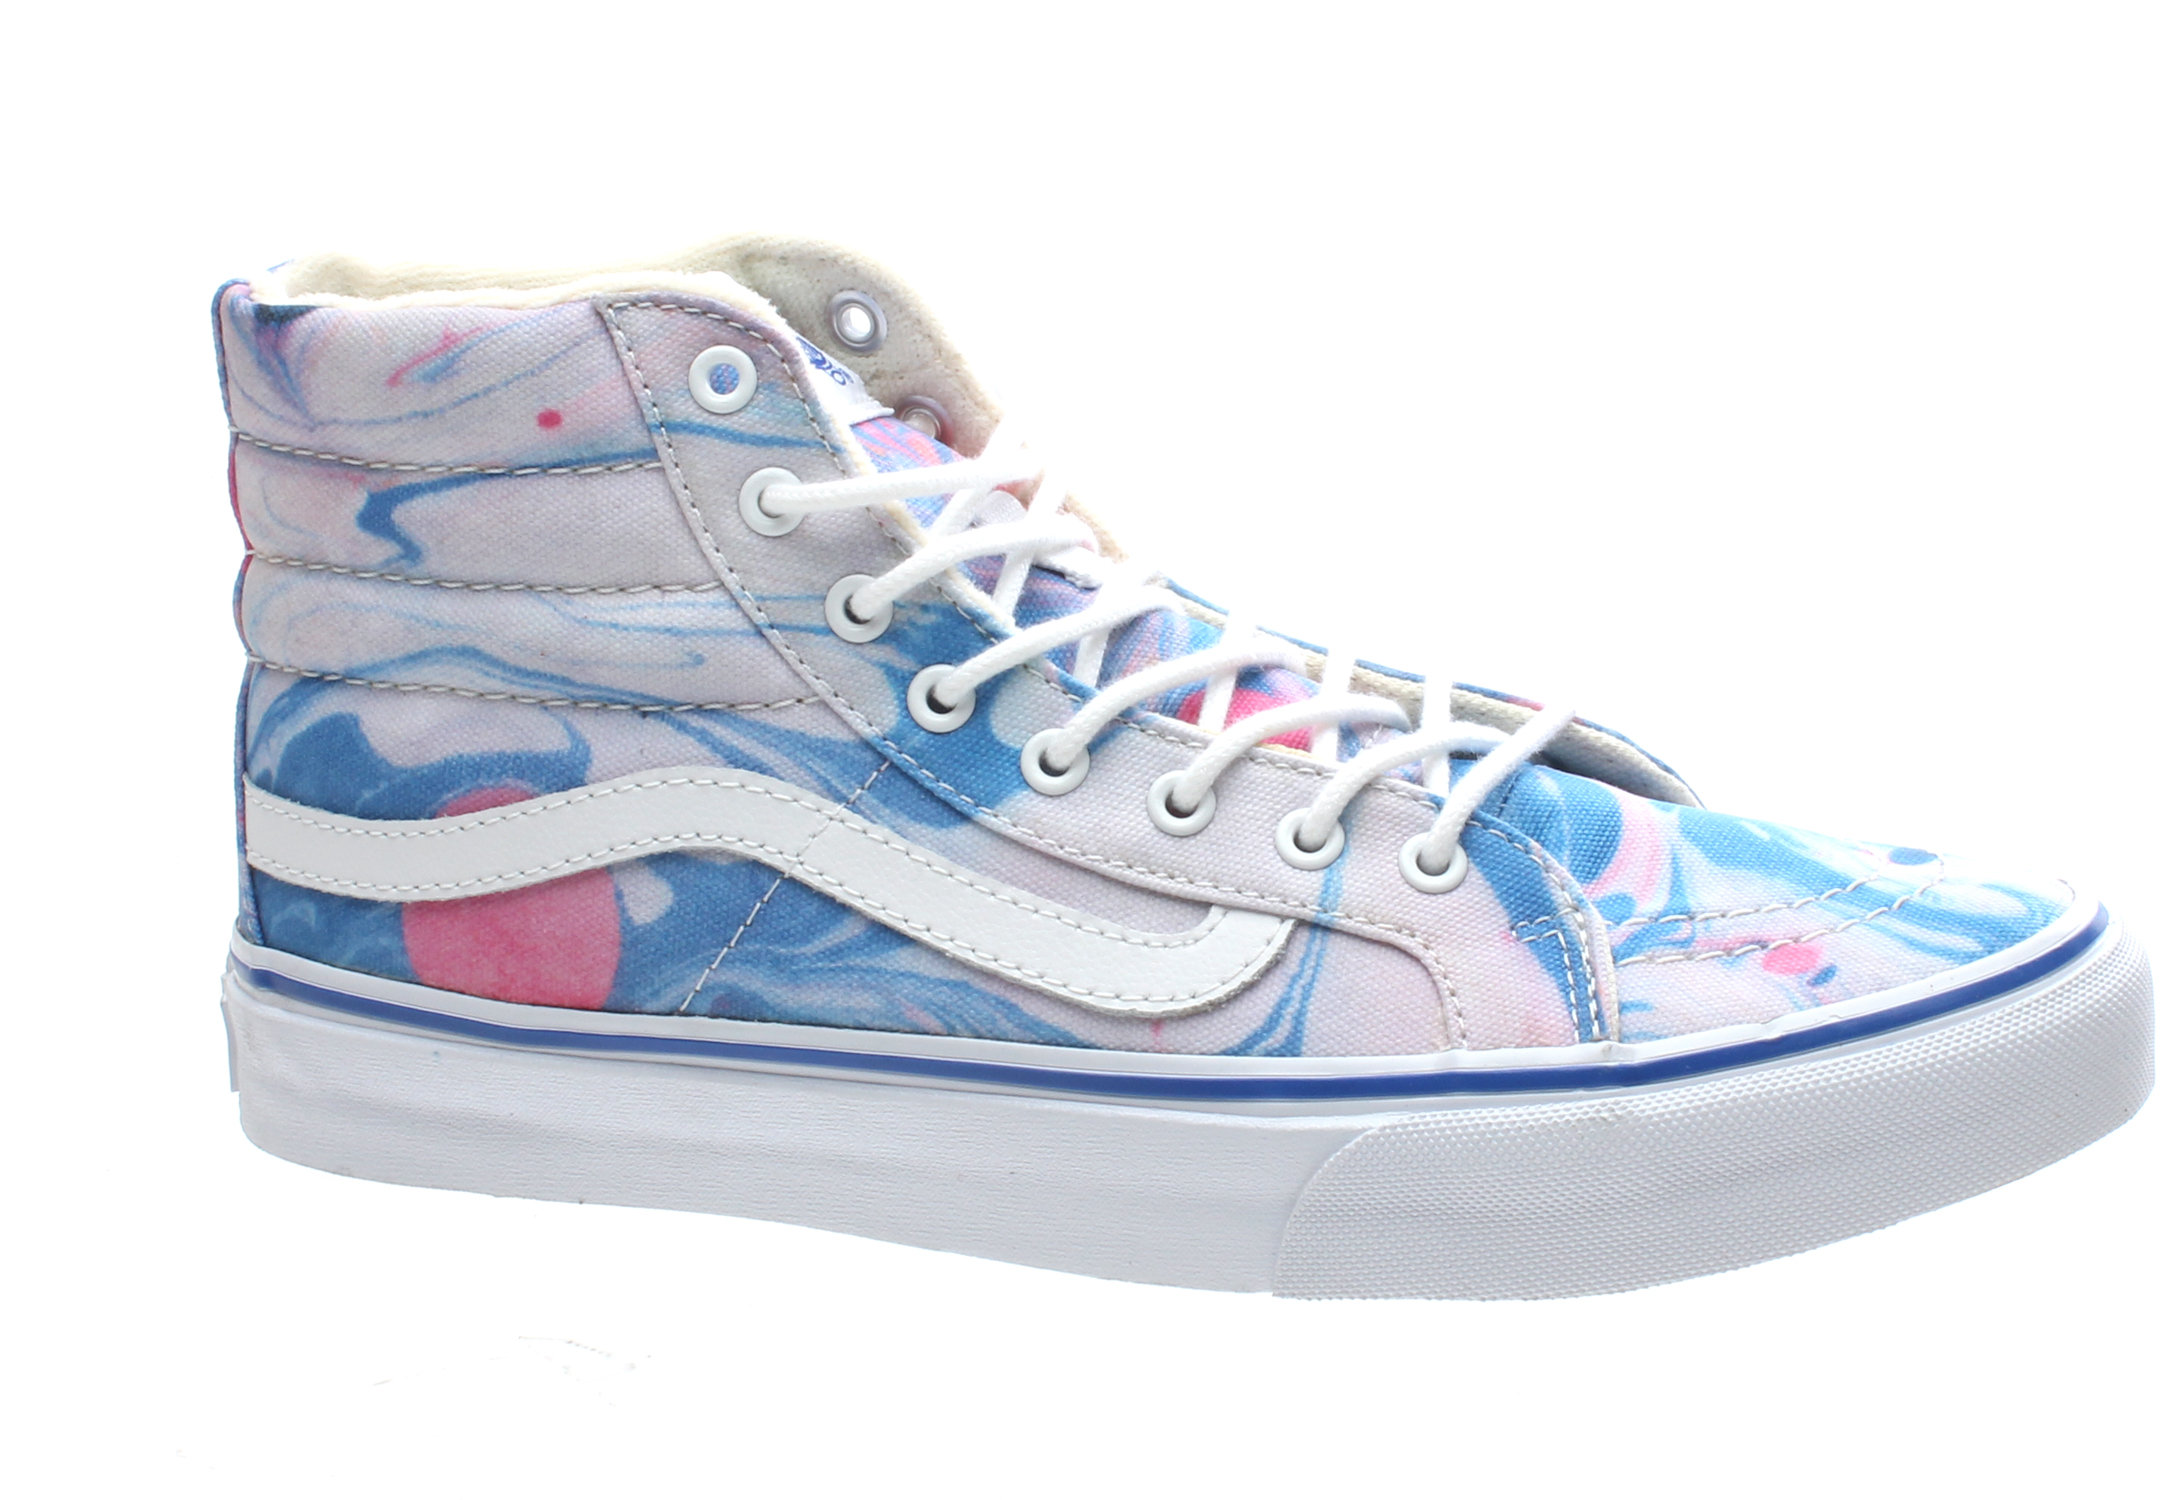 0043acb1e3 SK8 Hi Slim (Marble) True White Shoe QG3B7U